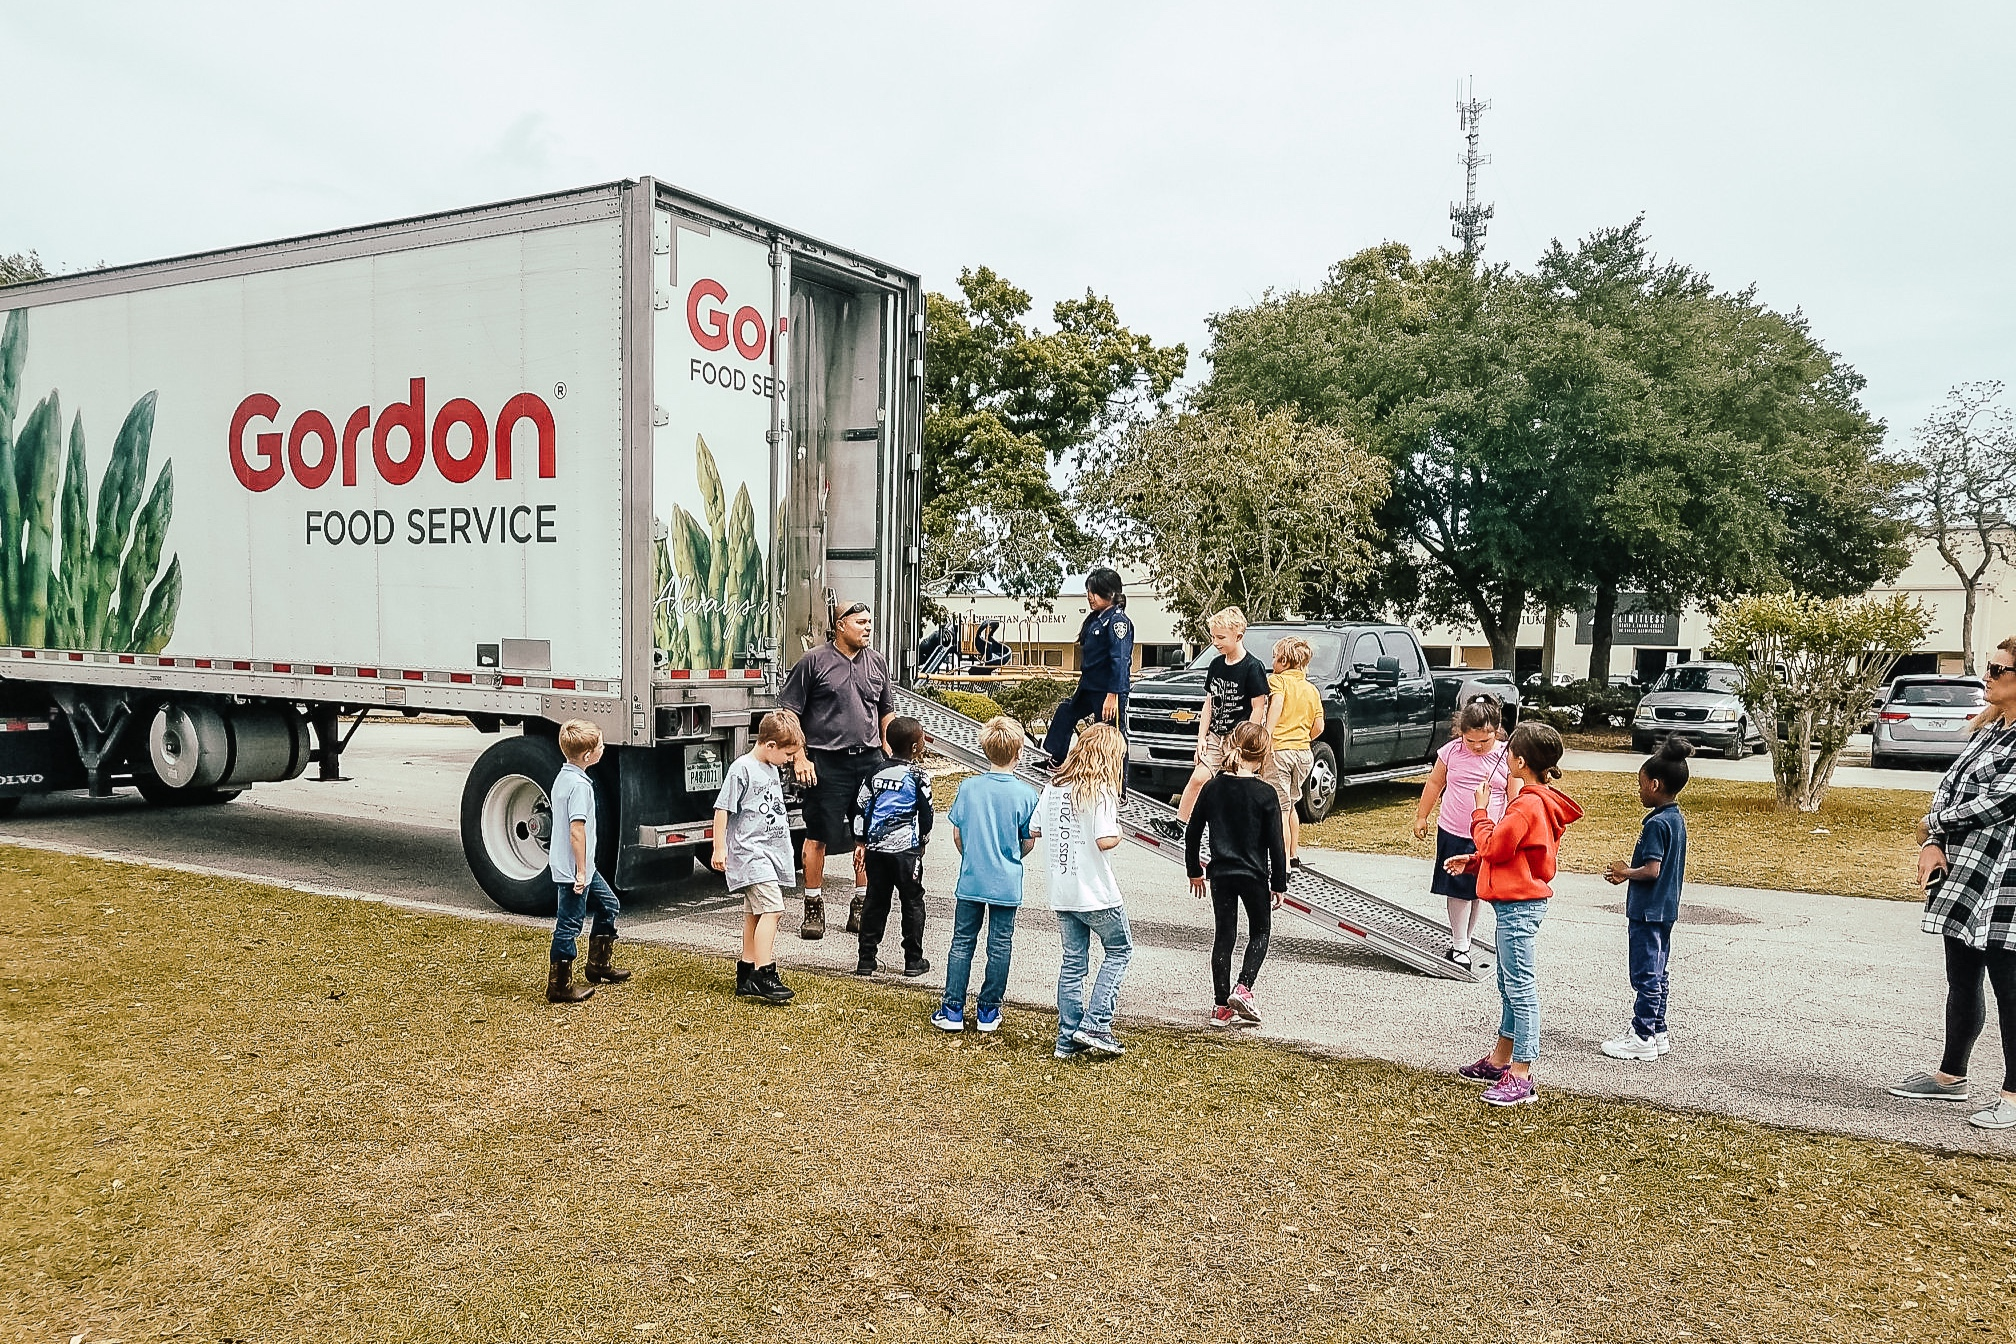 Elementary Students Touring a Food Service Truck